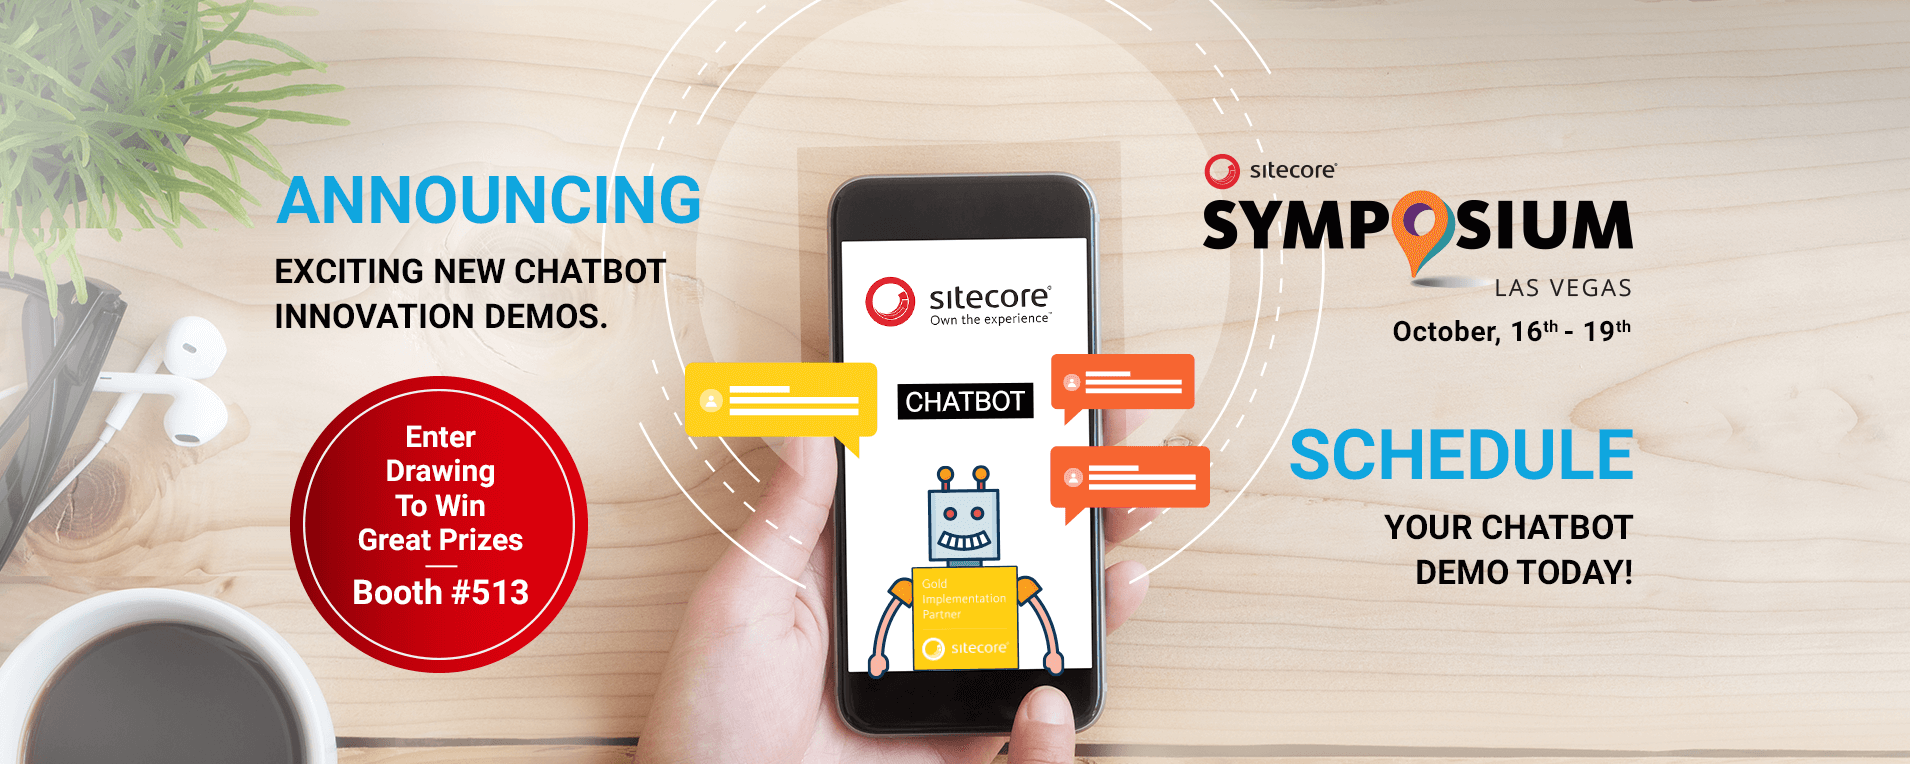 TA Digital @Sitecore Symposium 2017 – Experience Our Chatbot Innovation Demos and more…